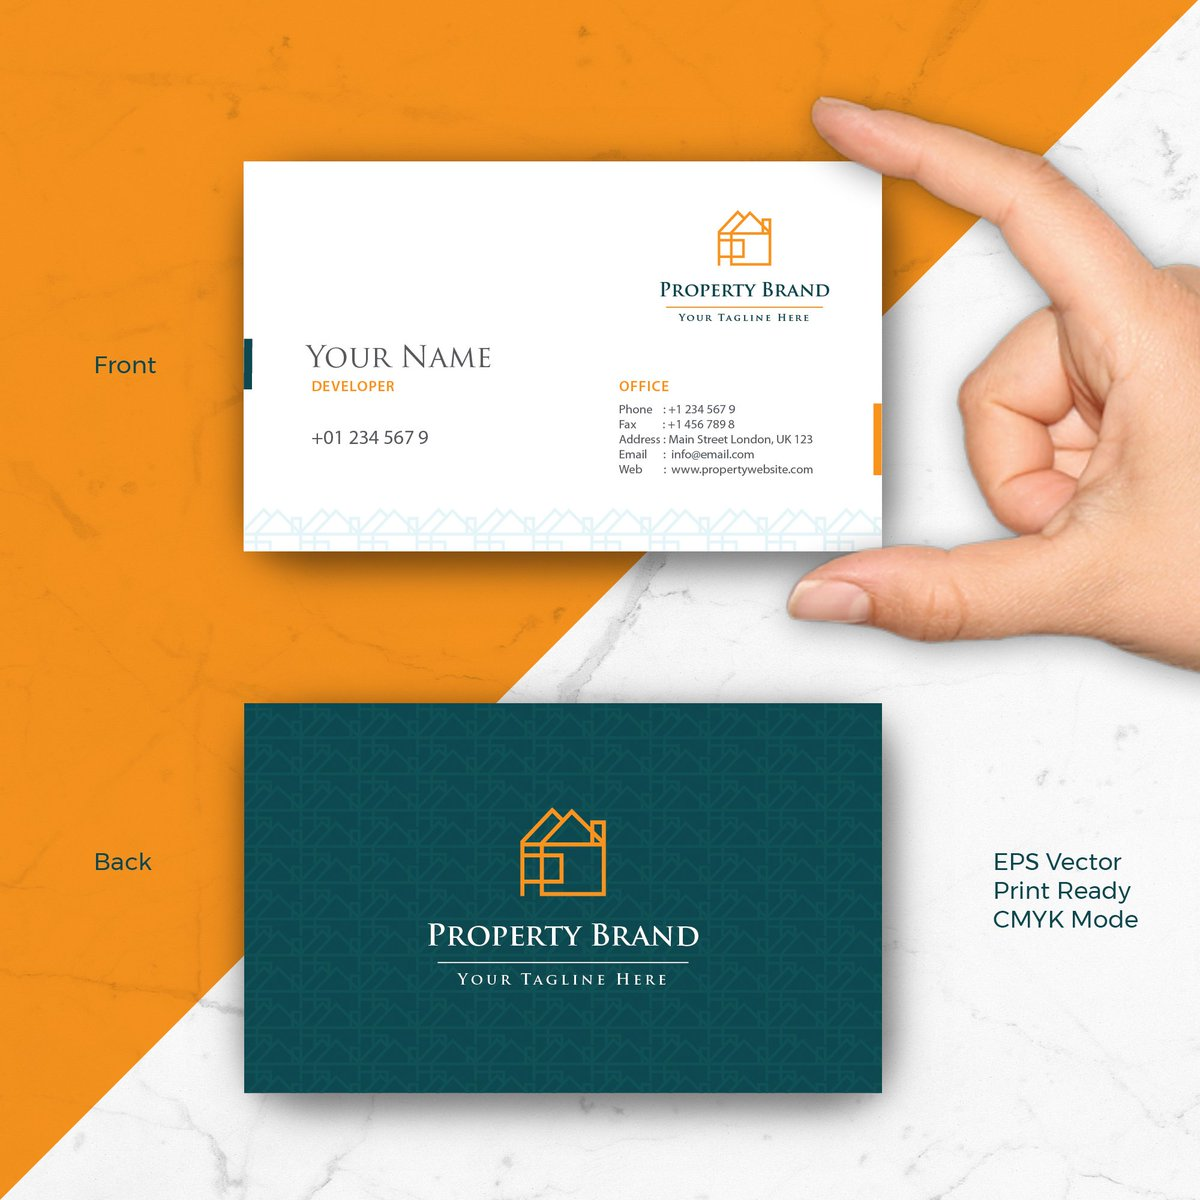 Pixiagraphics on twitter business cards design template for pixiagraphics on twitter business cards design template for property or real estate company link to buy httpstfirvdux4hz realestate property reheart Image collections